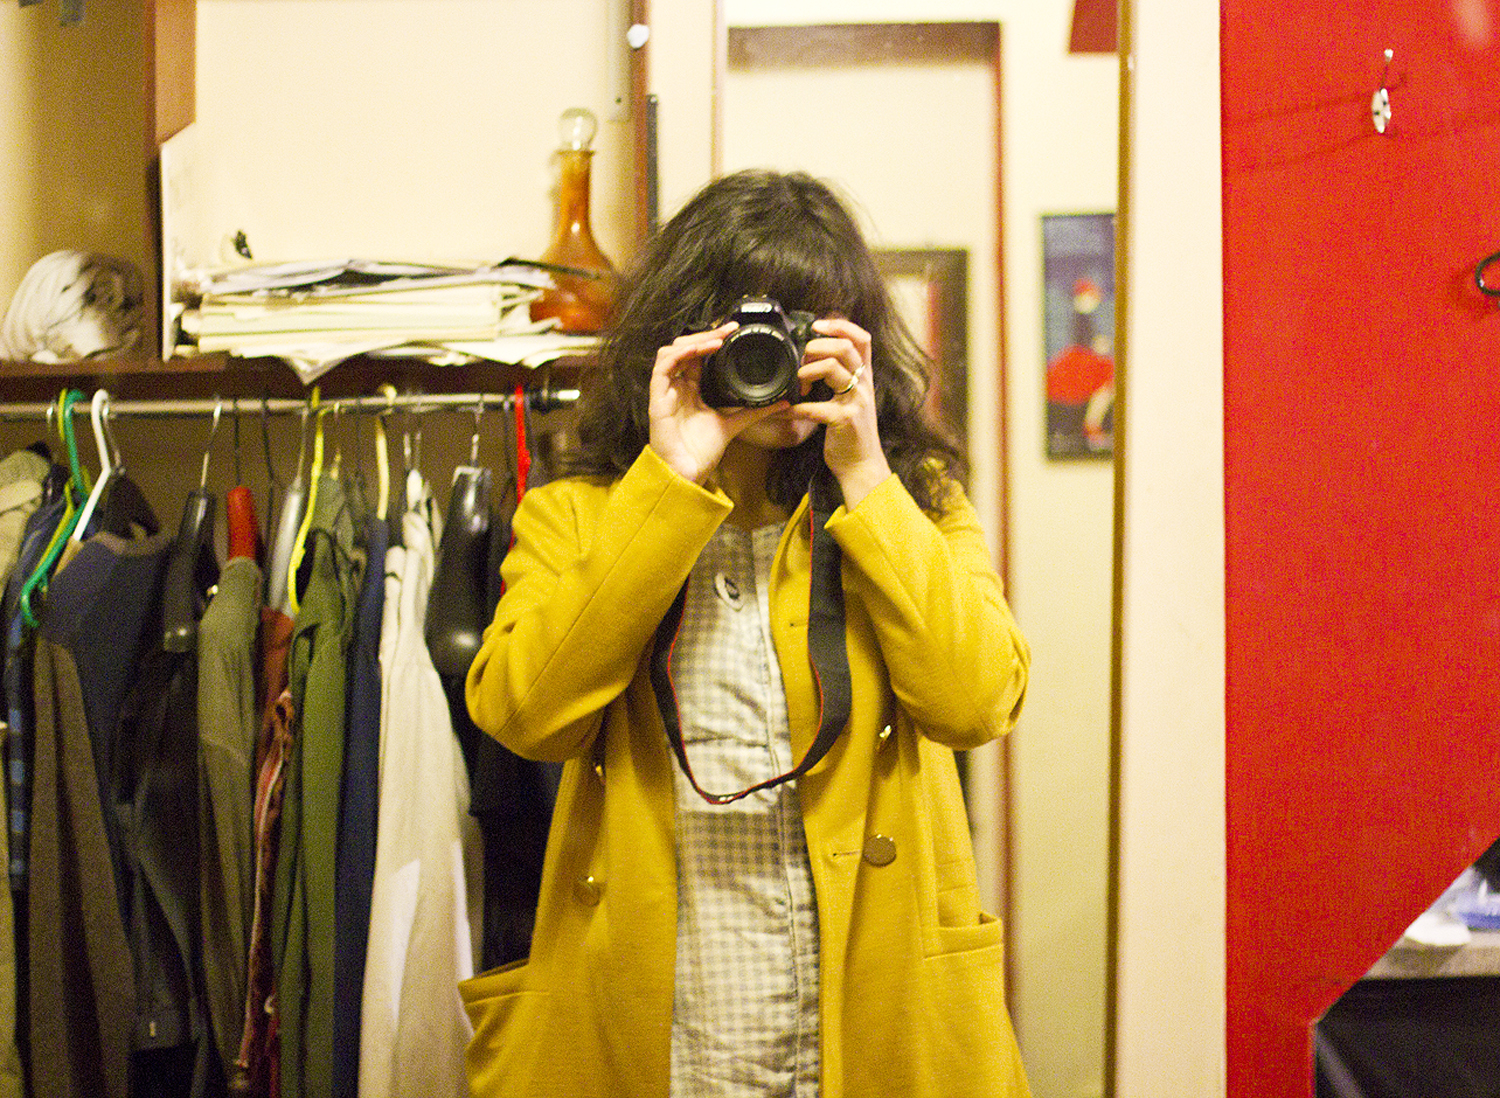 backstage dressing room selfie yellow orla kiely coat